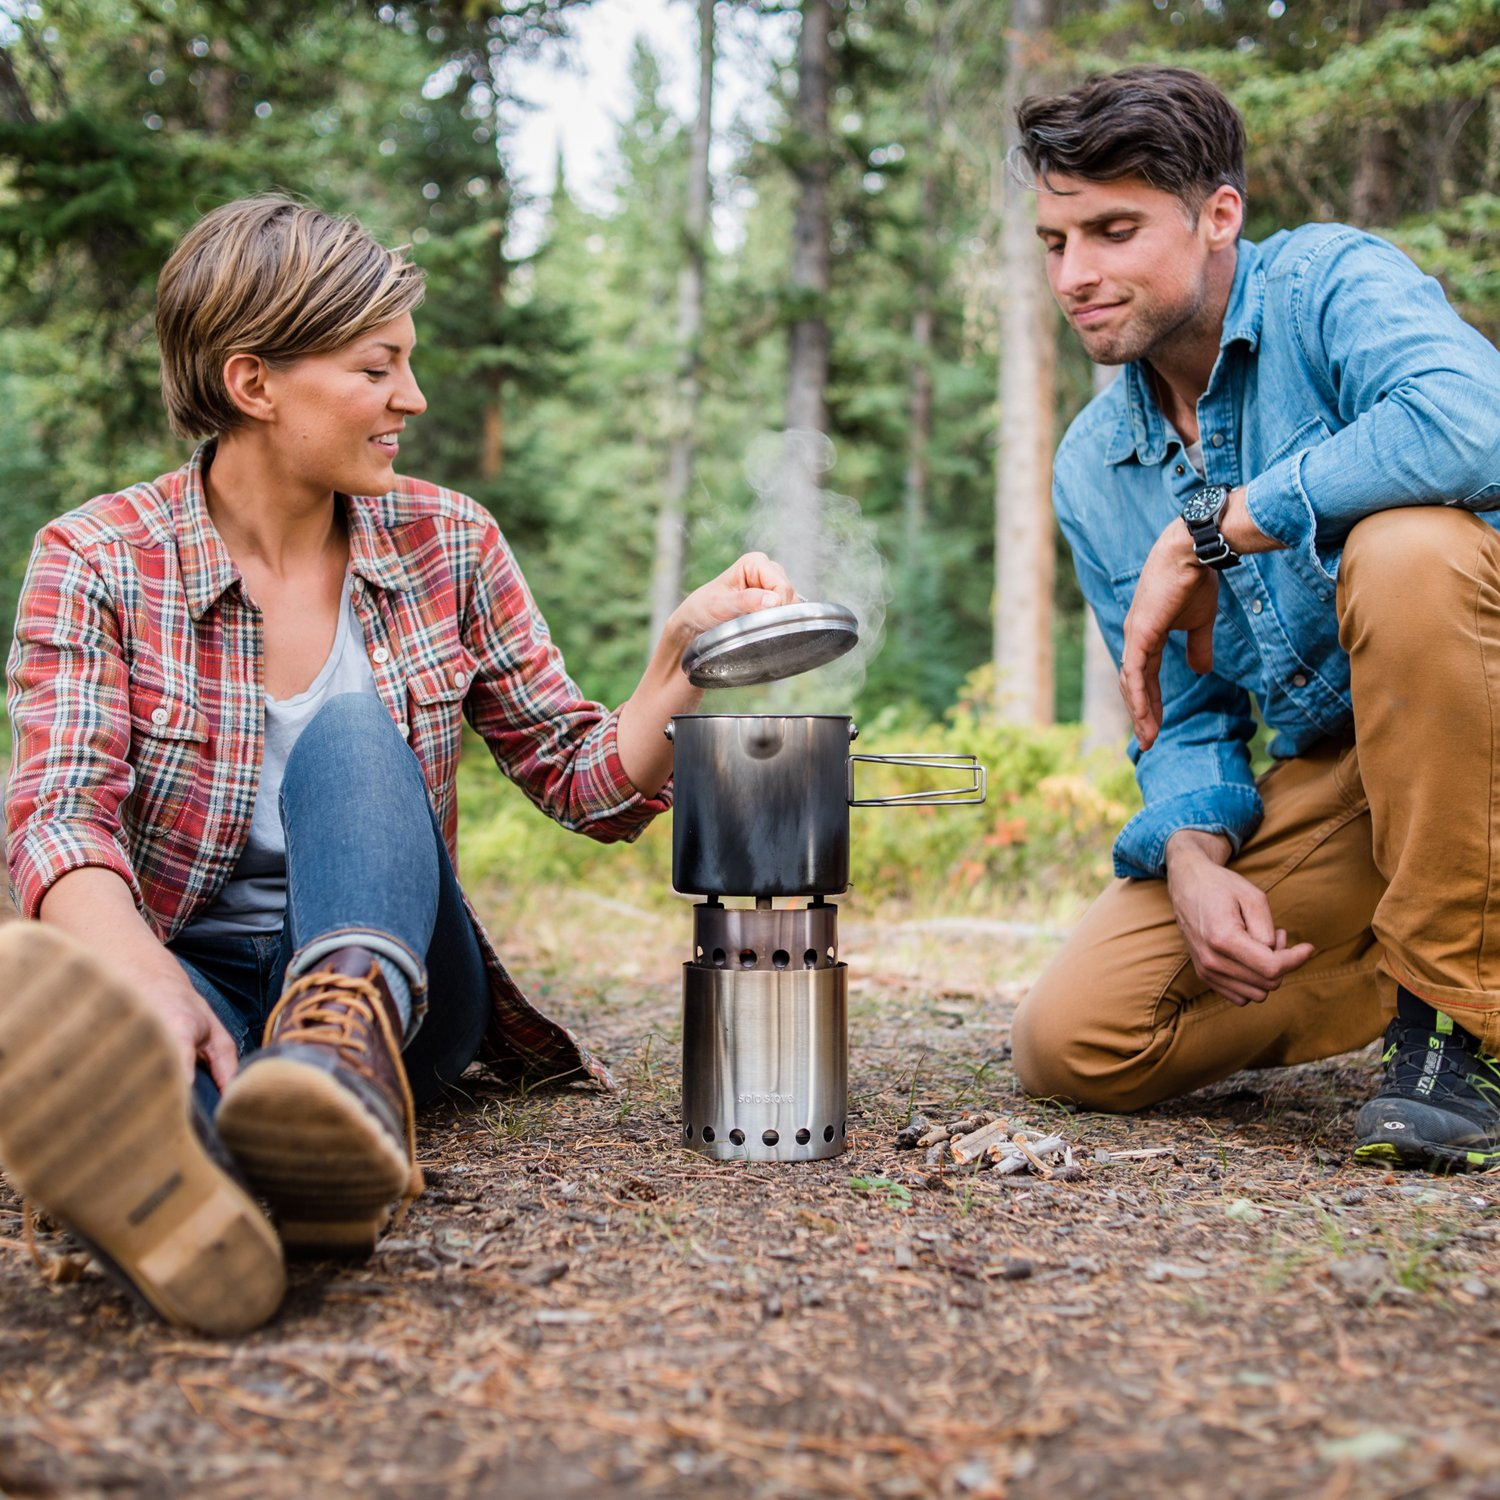 Solo Stove Titan & Solo Pot 1800 Camp Stove Combo: Woodburning Backpacking Stove Great for Camping and Survival by Solo Stove (Image #6)